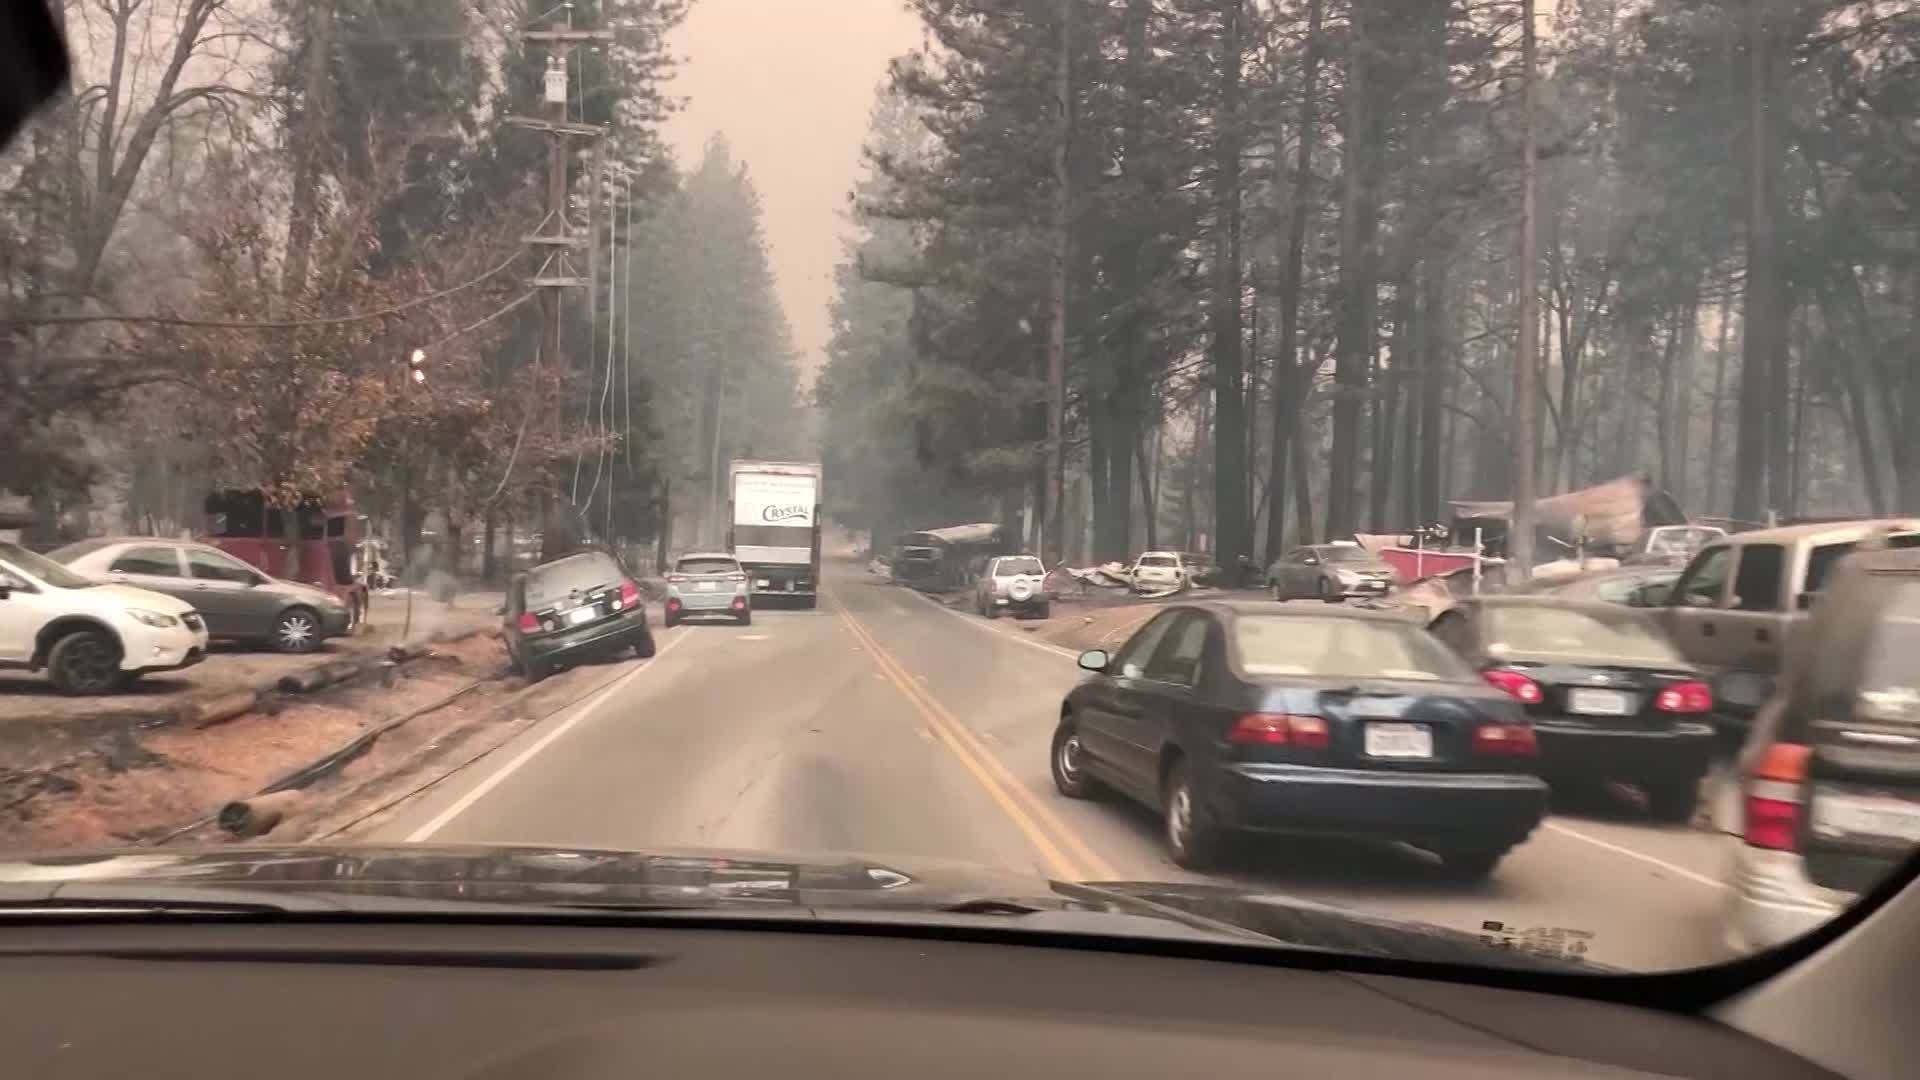 Camp_Fire__Eerie_video_of_abandoned_and__0_20181112003303